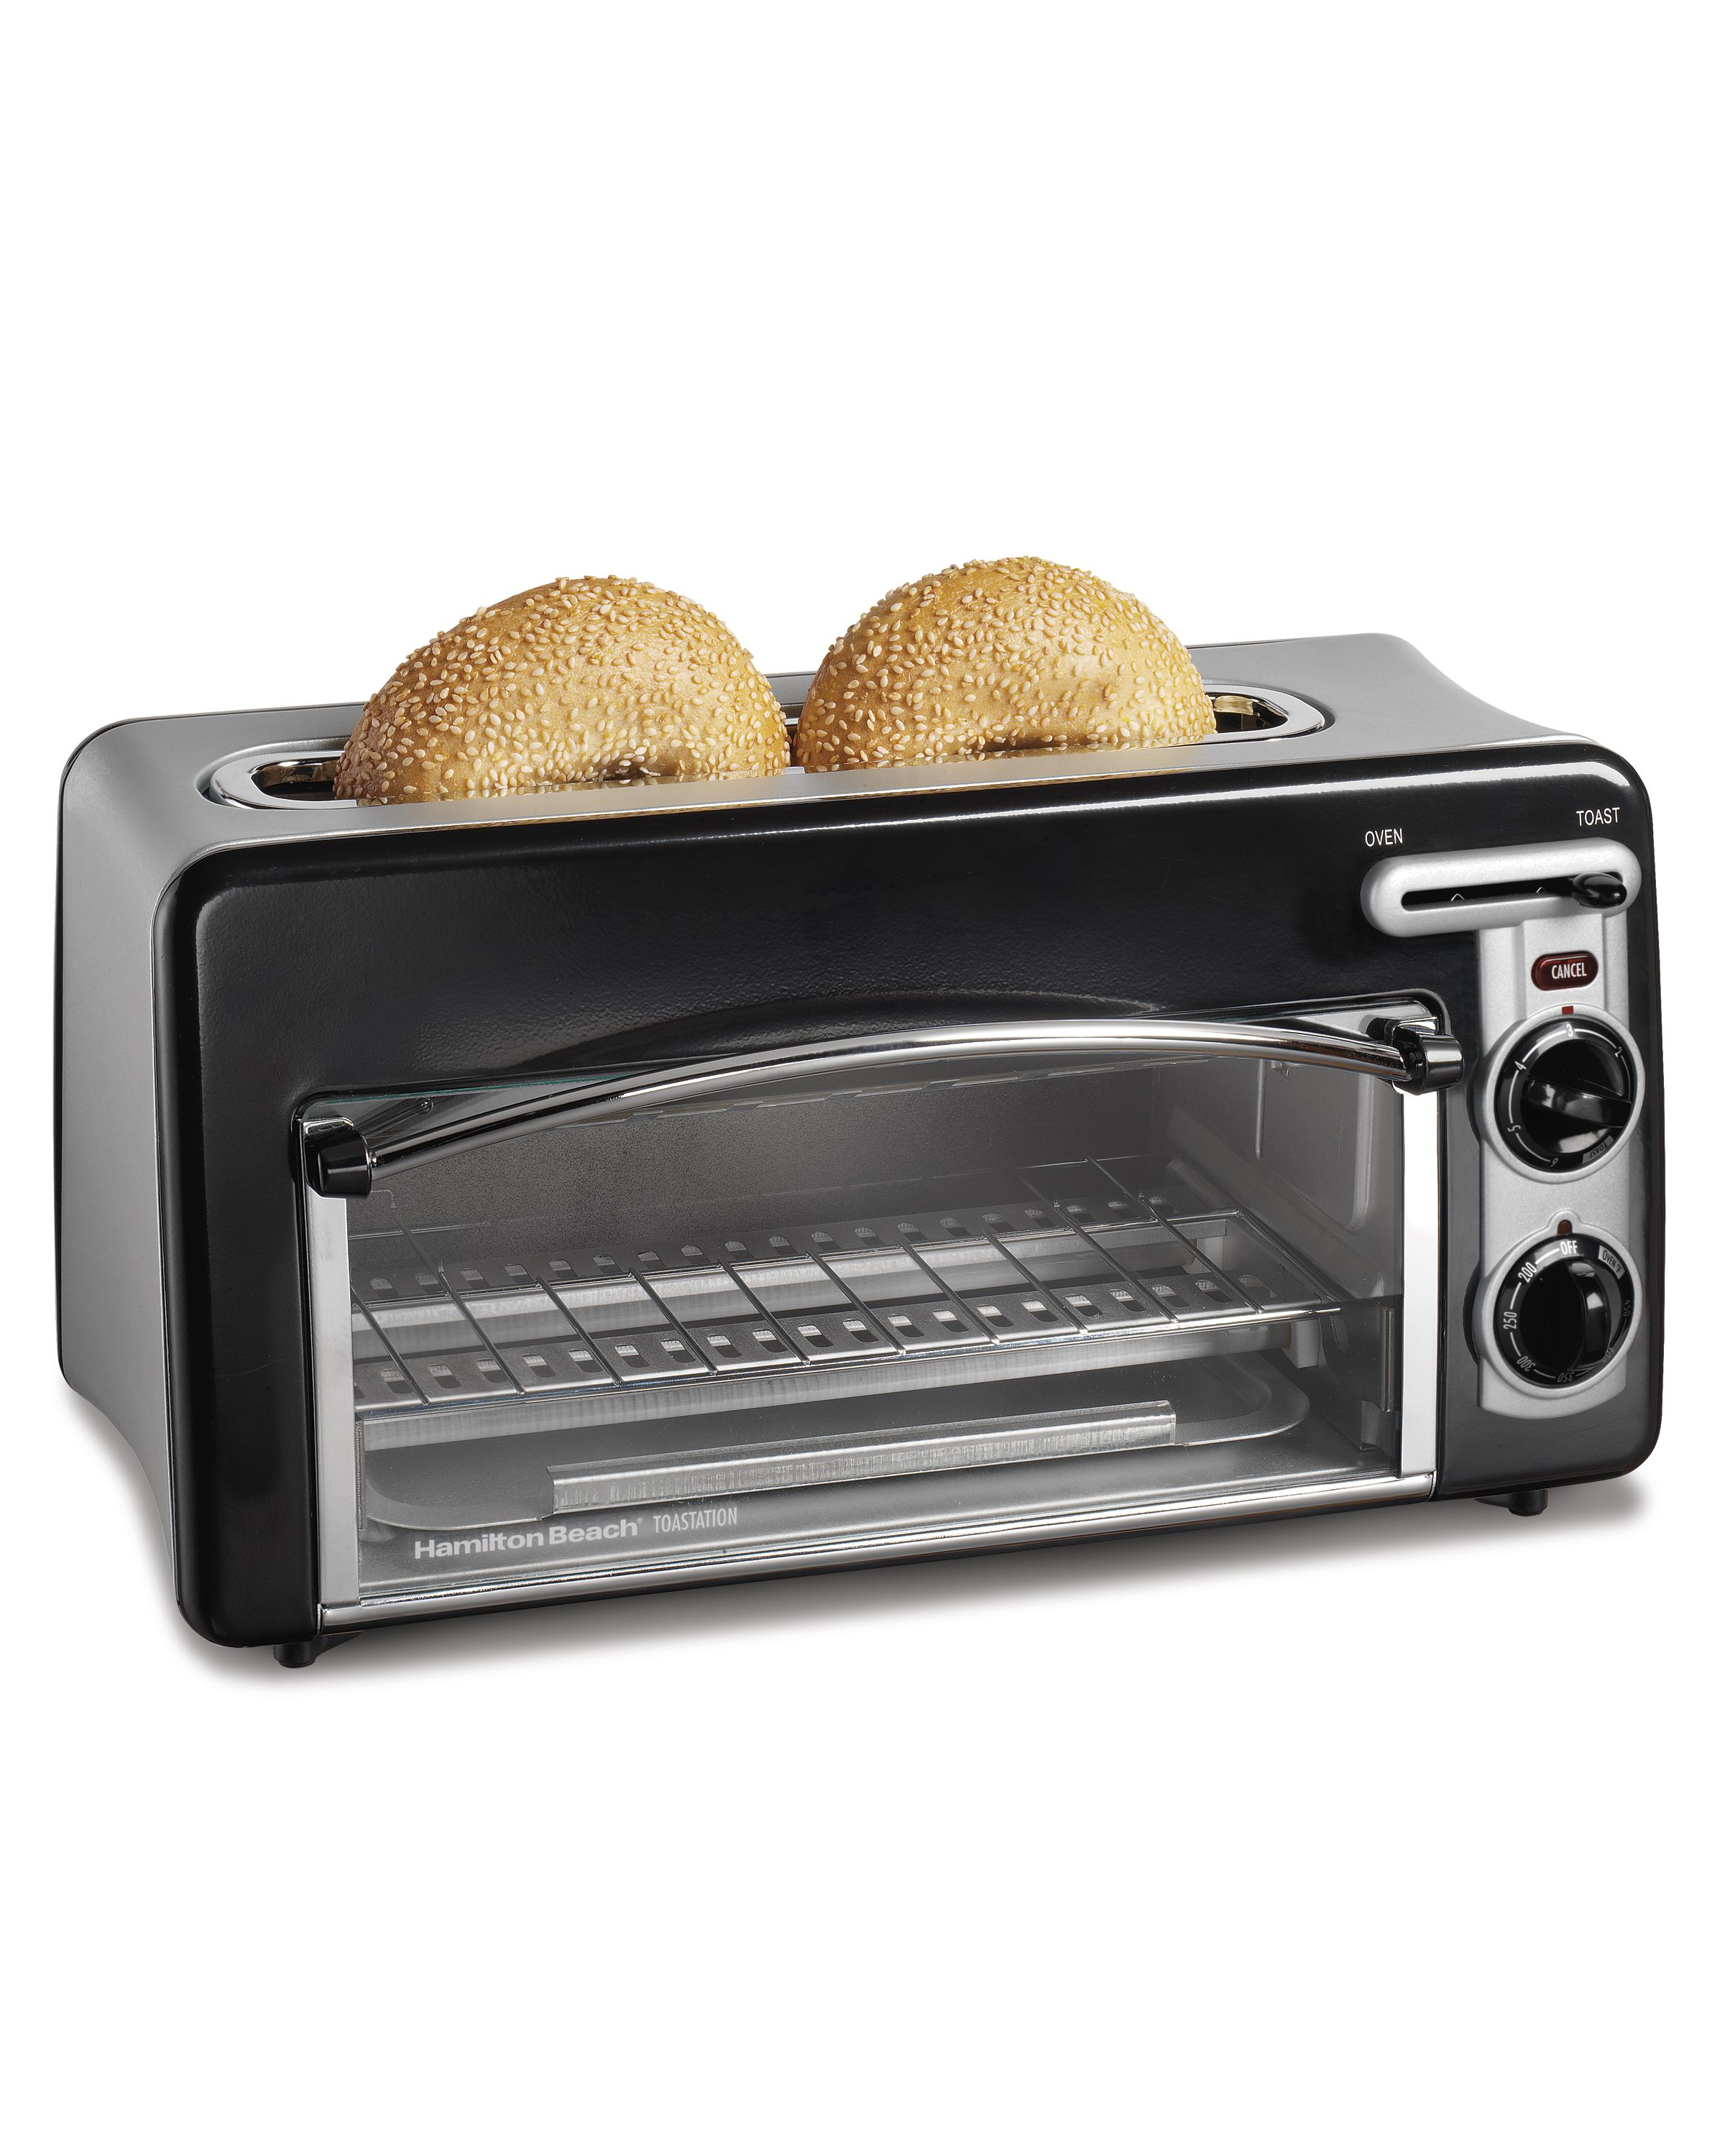 view calphalon oven beach hamilton larger black mini toaster toastation slice and dp